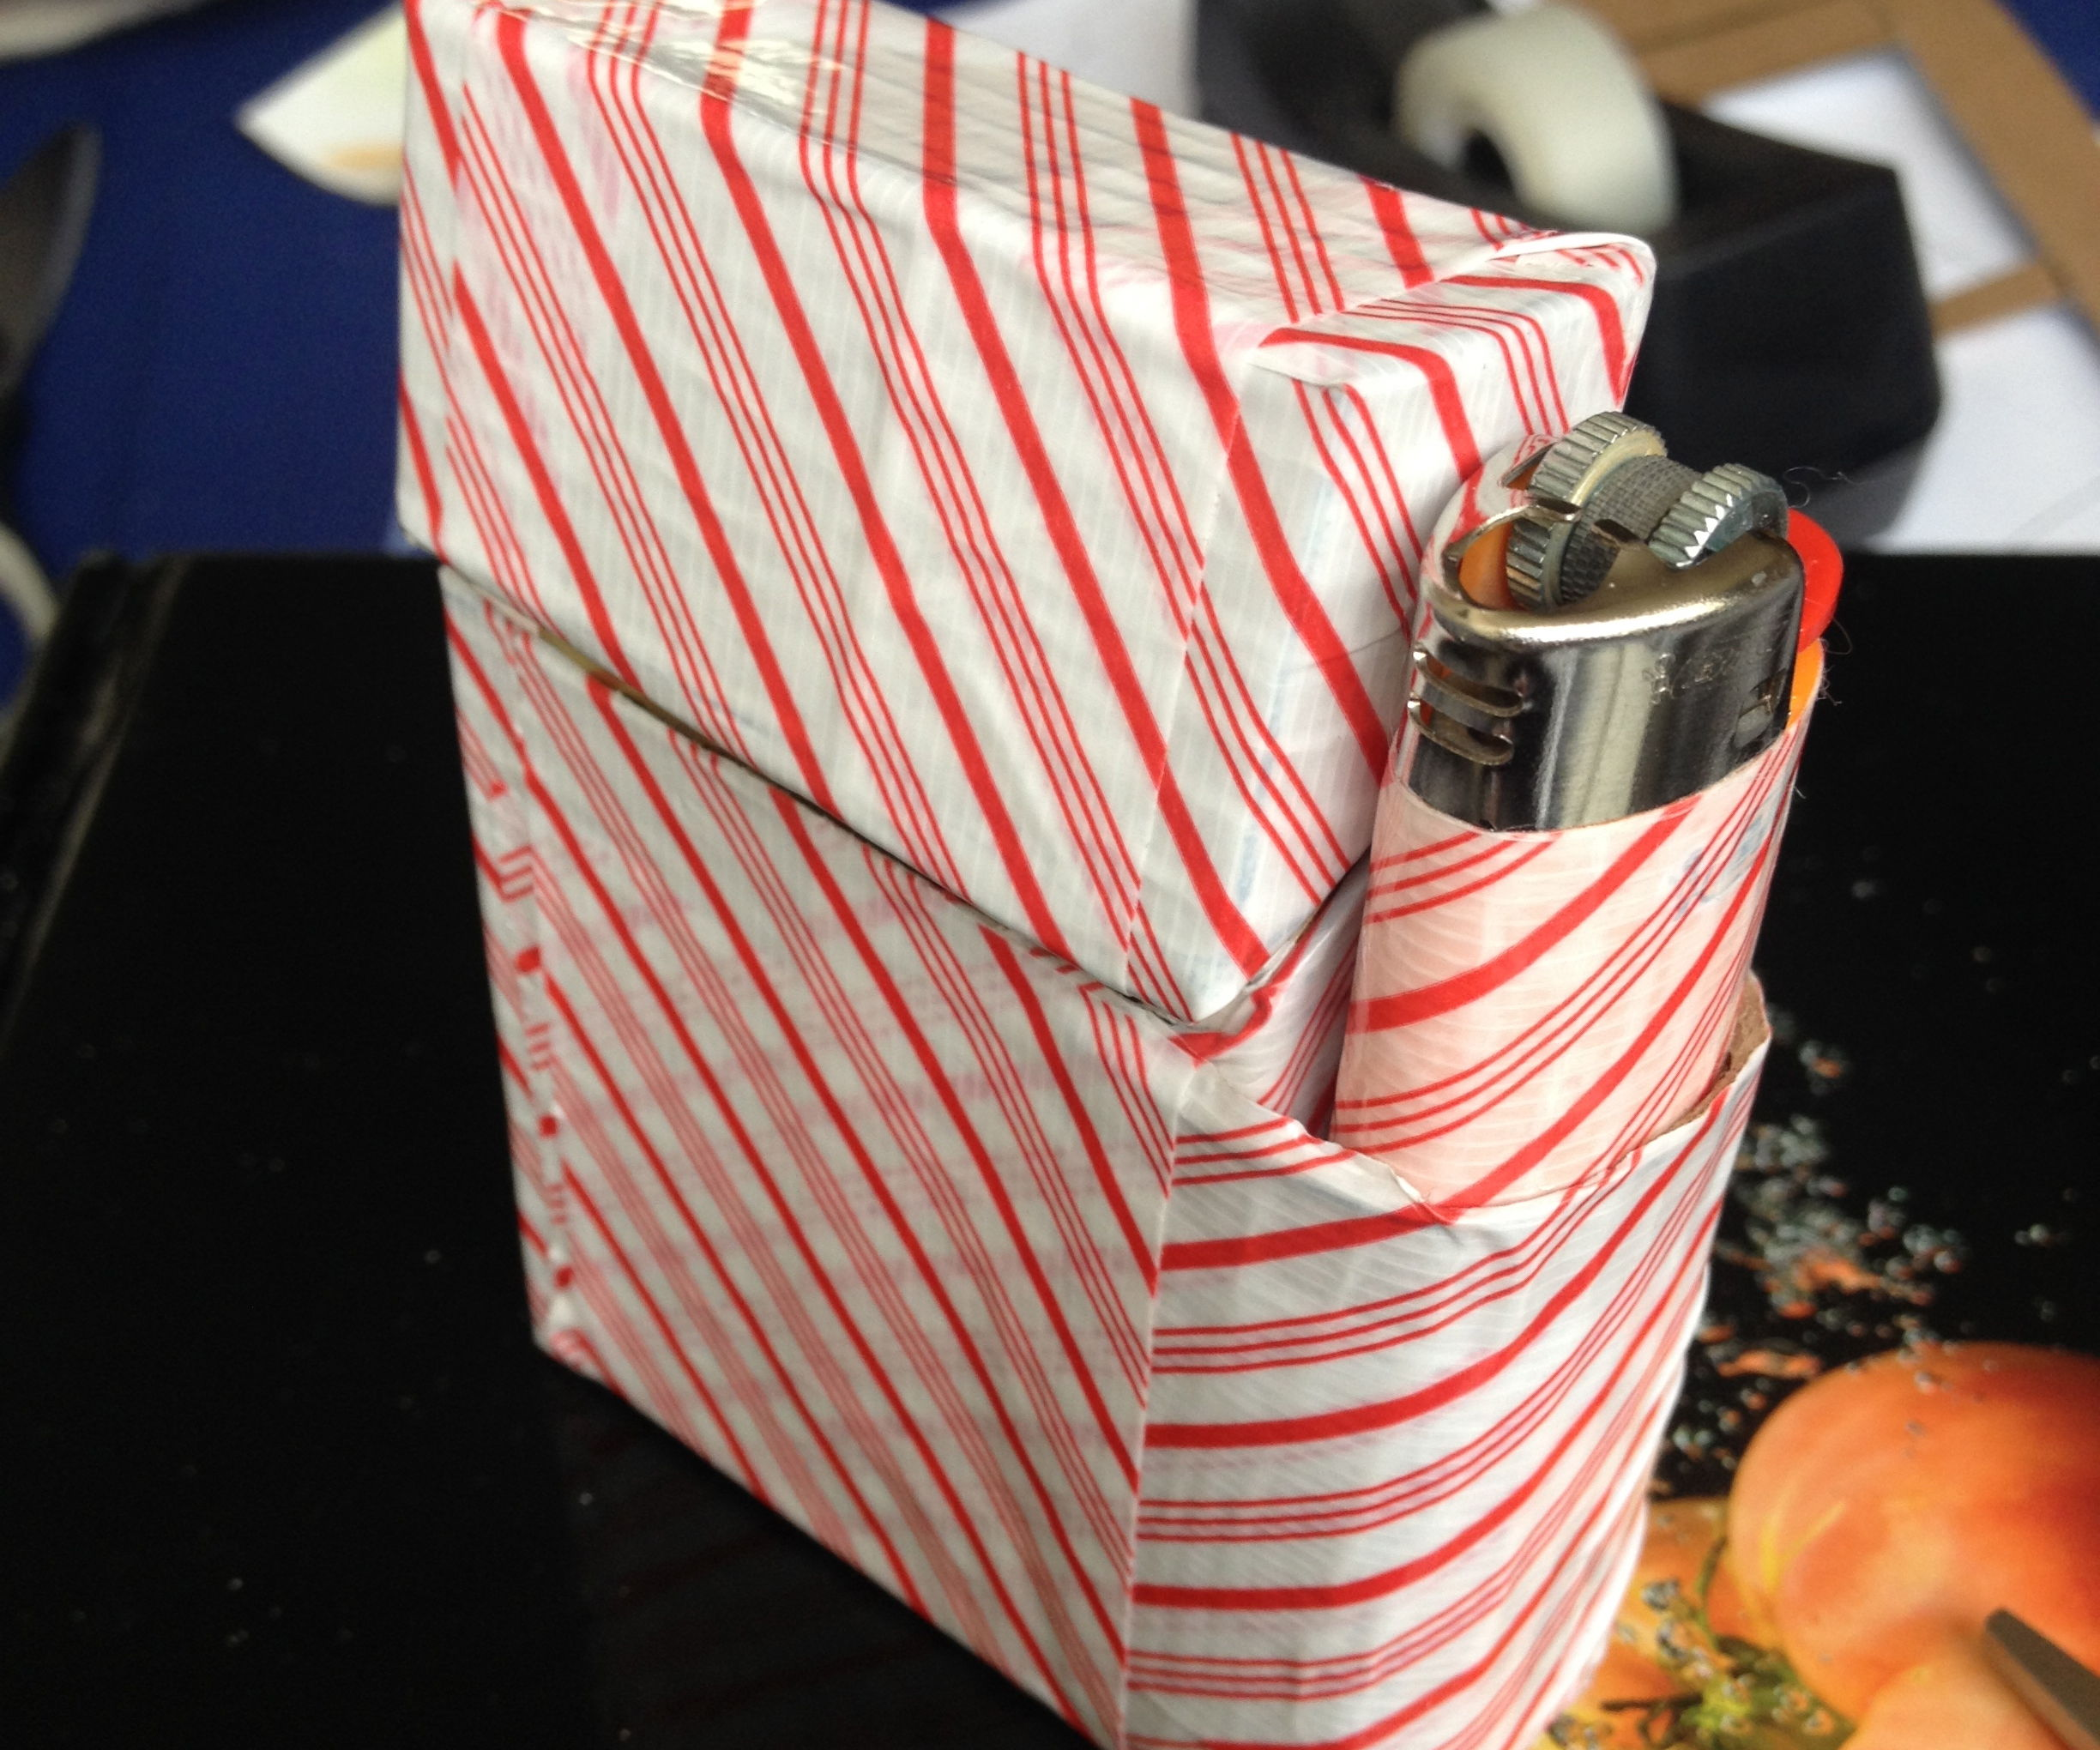 How to make a Duct tape Cigarette Case